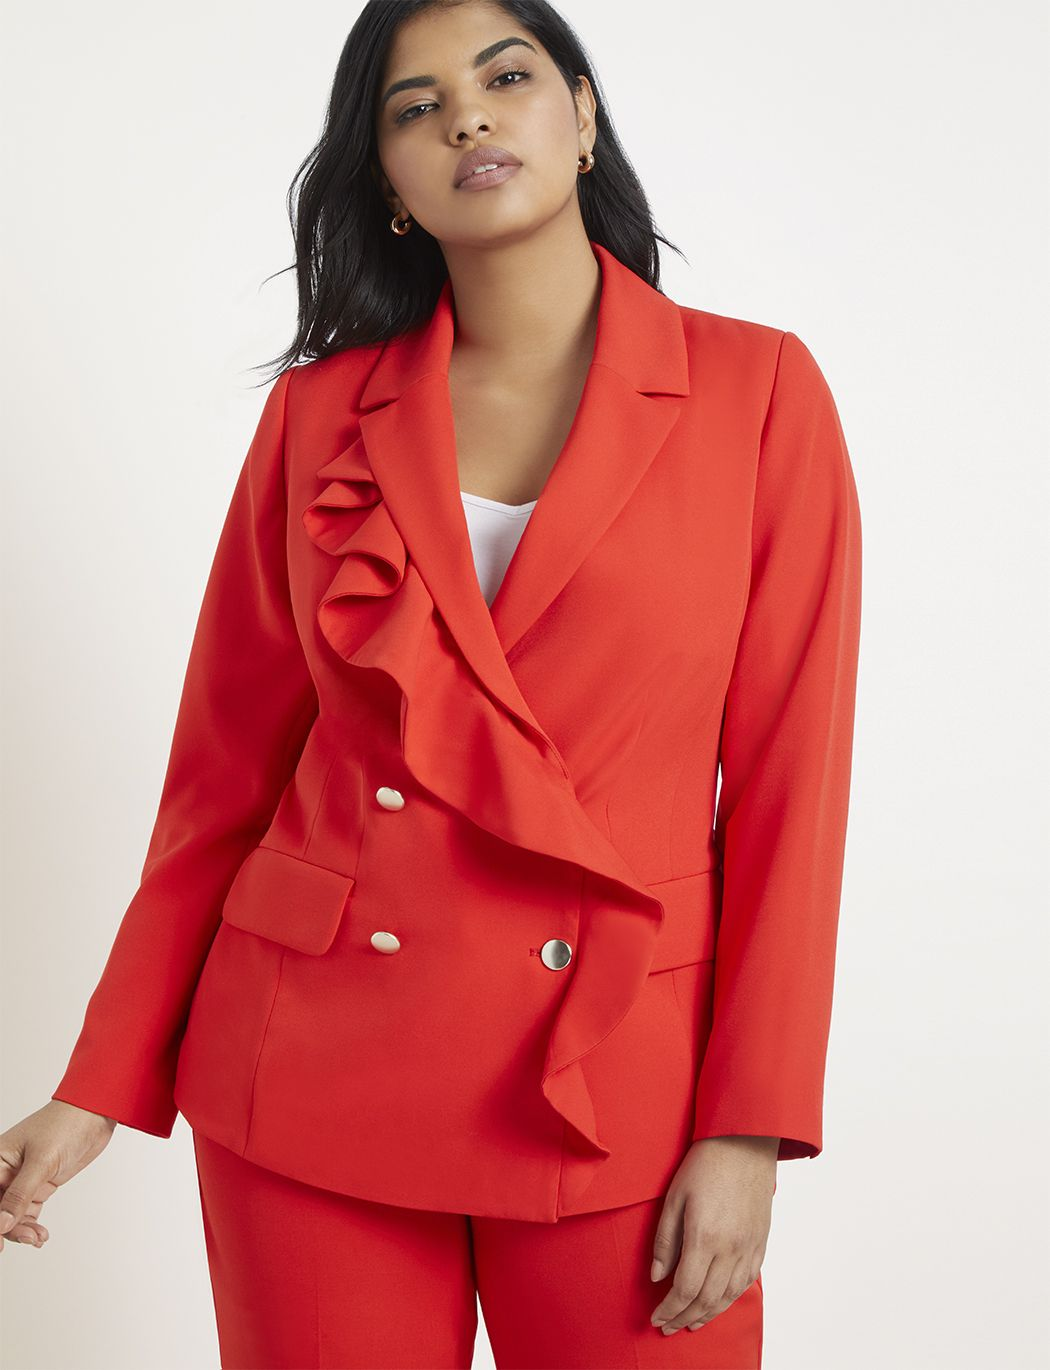 632d7e527f3 Double Breasted Blazer with Ruffle | Women's Plus Size Coats + Jackets |  ELOQUII